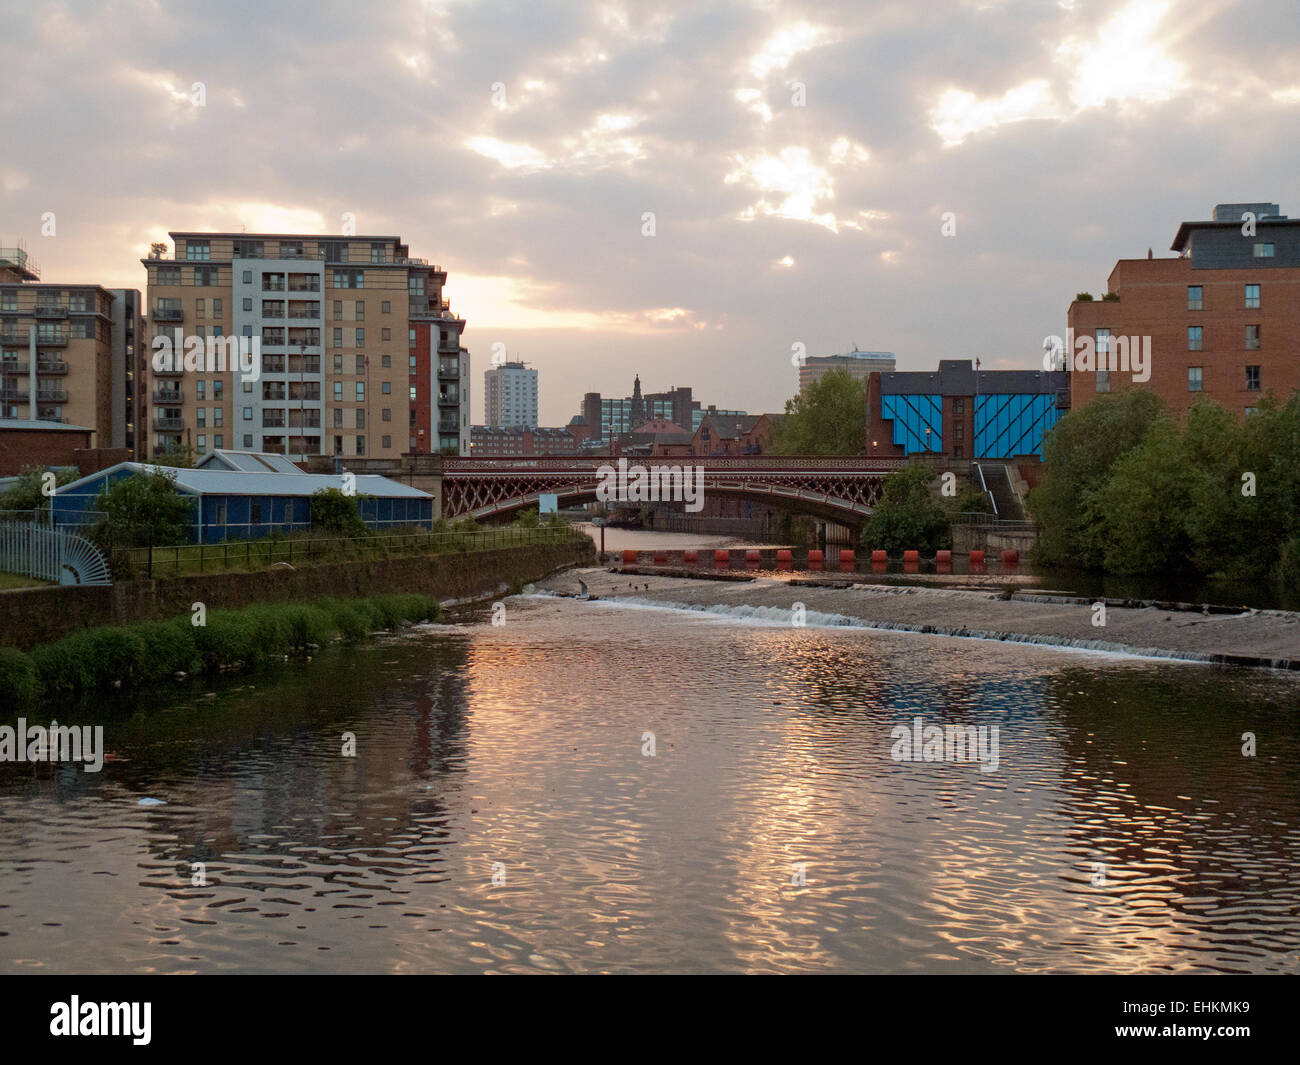 View of central Leeds from Crown Point Bridge and the River Aire - Stock Image